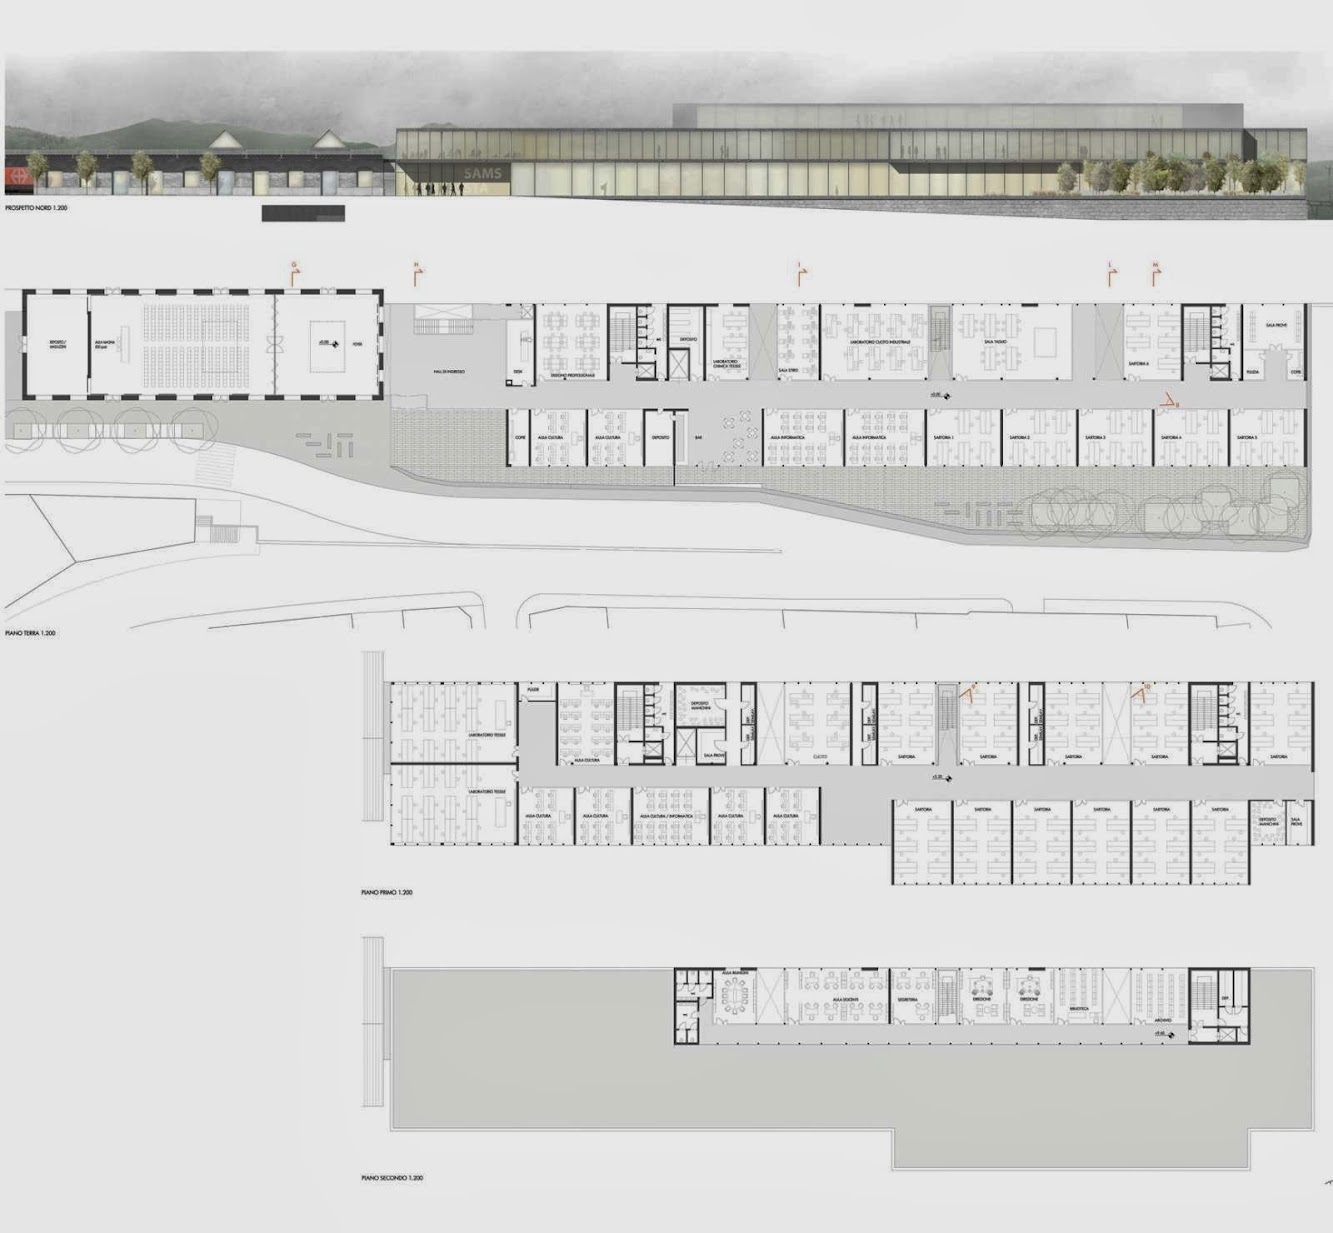 10-Antonio-Citterio-Patricia-Viel-and-C+S-Architects-Win-SAMS-STA-competition